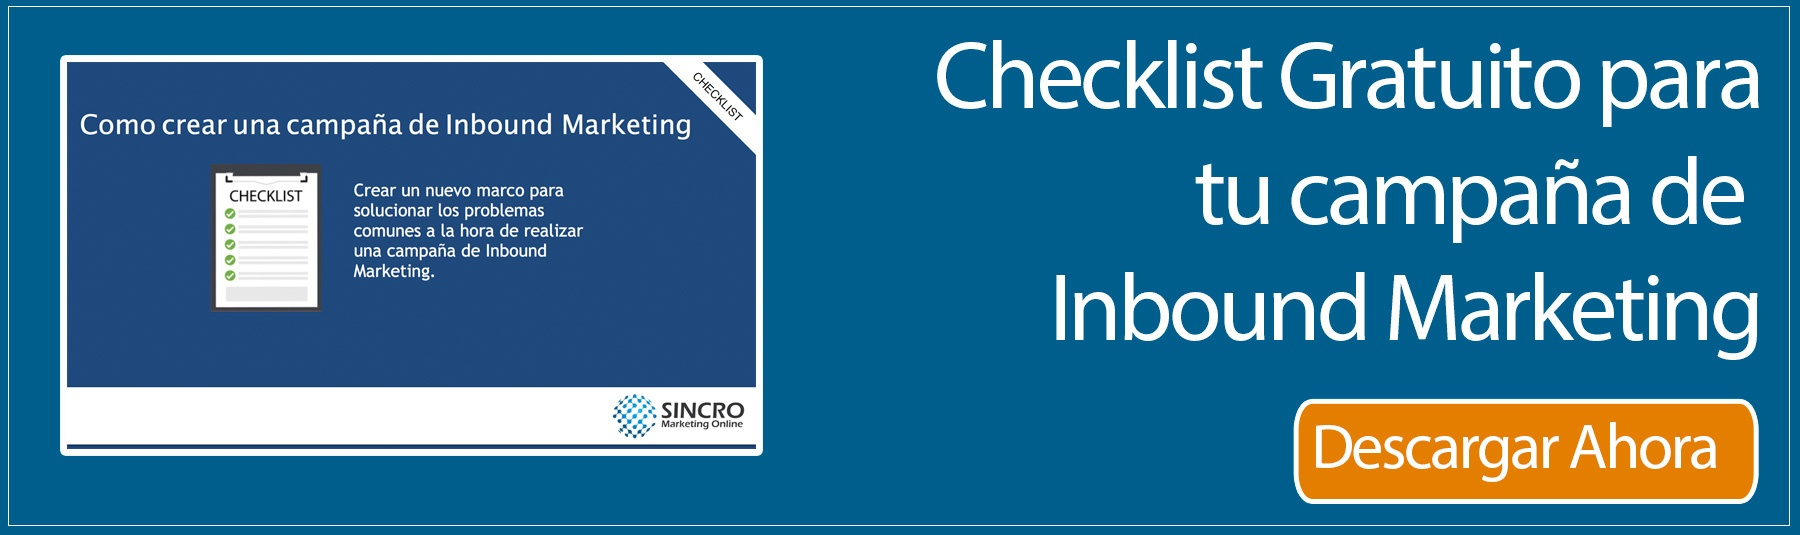 checklist campaña inbound marketing